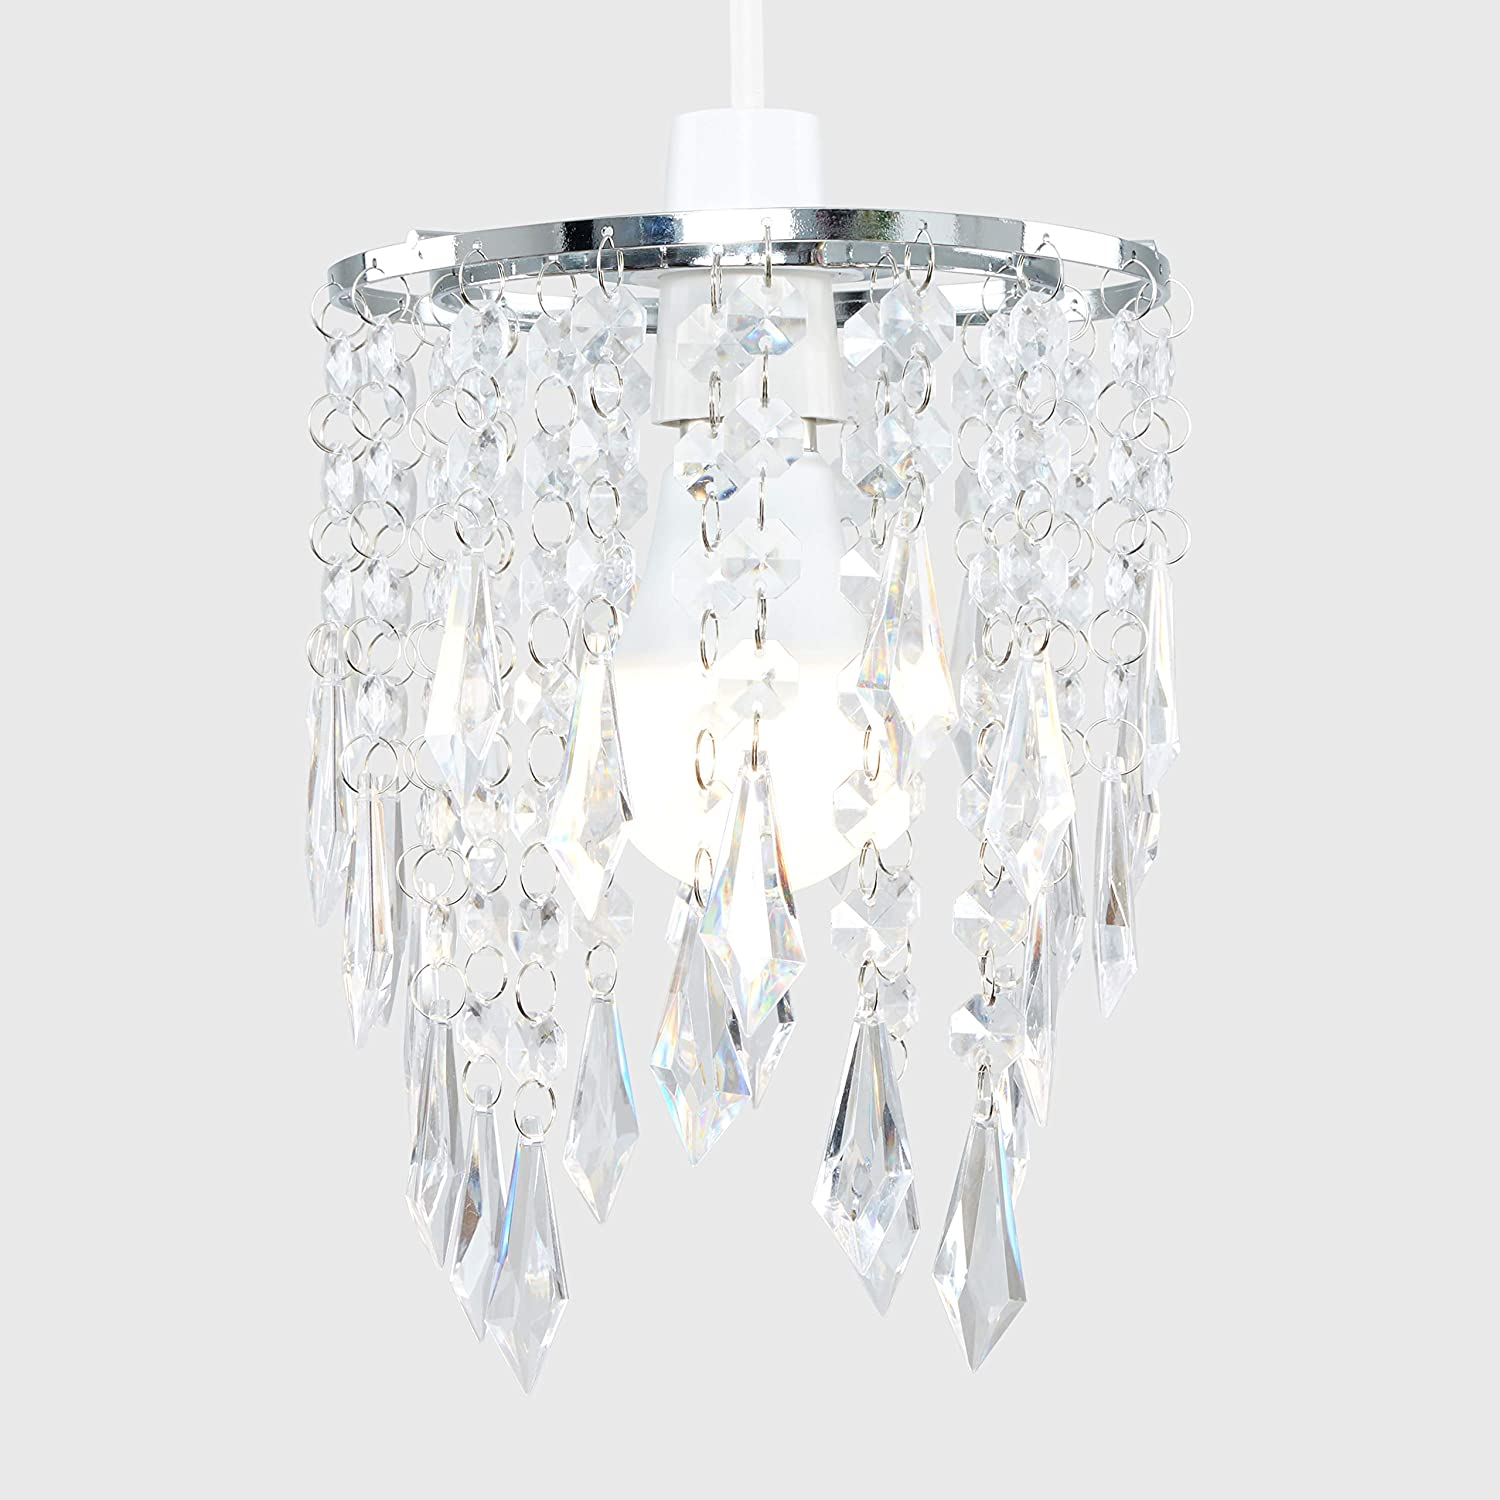 Elegant Chandelier Design Ceiling Pendant Light Shade with Beautiful Blue and Clear Acrylic Jewel Effect Droplets